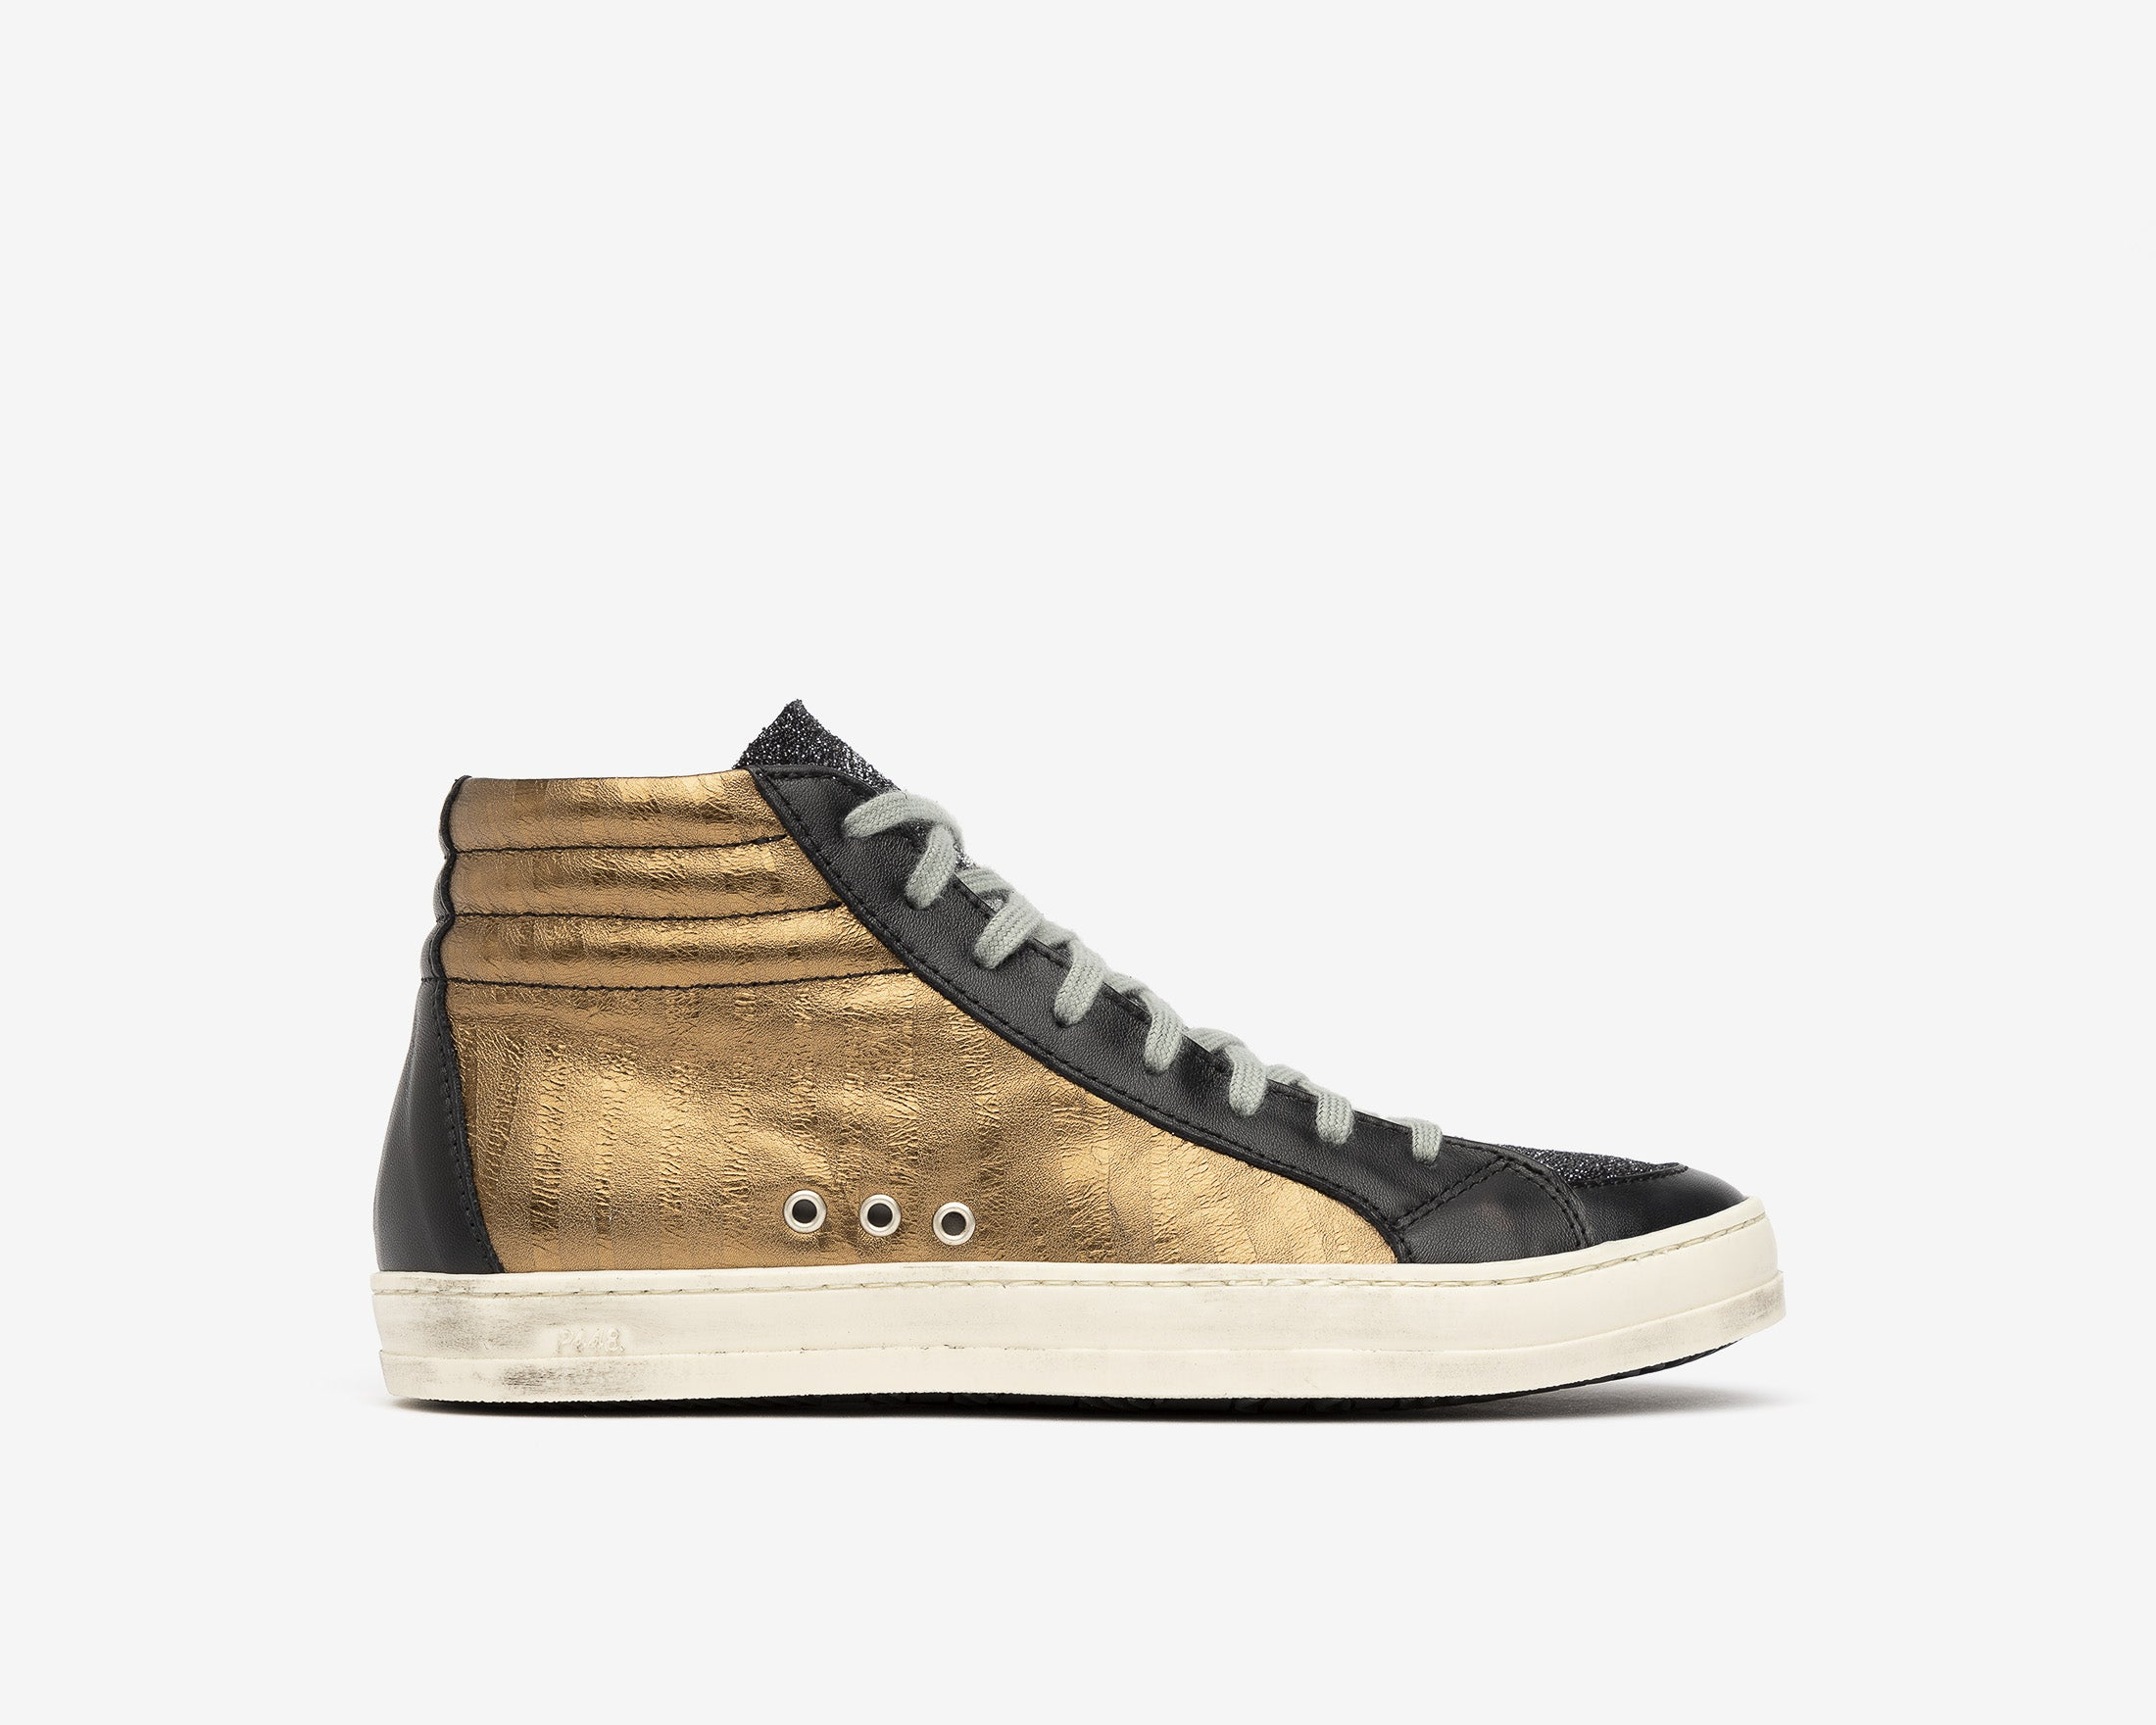 SkateBS High-Top Sneaker in Sahara - Profile